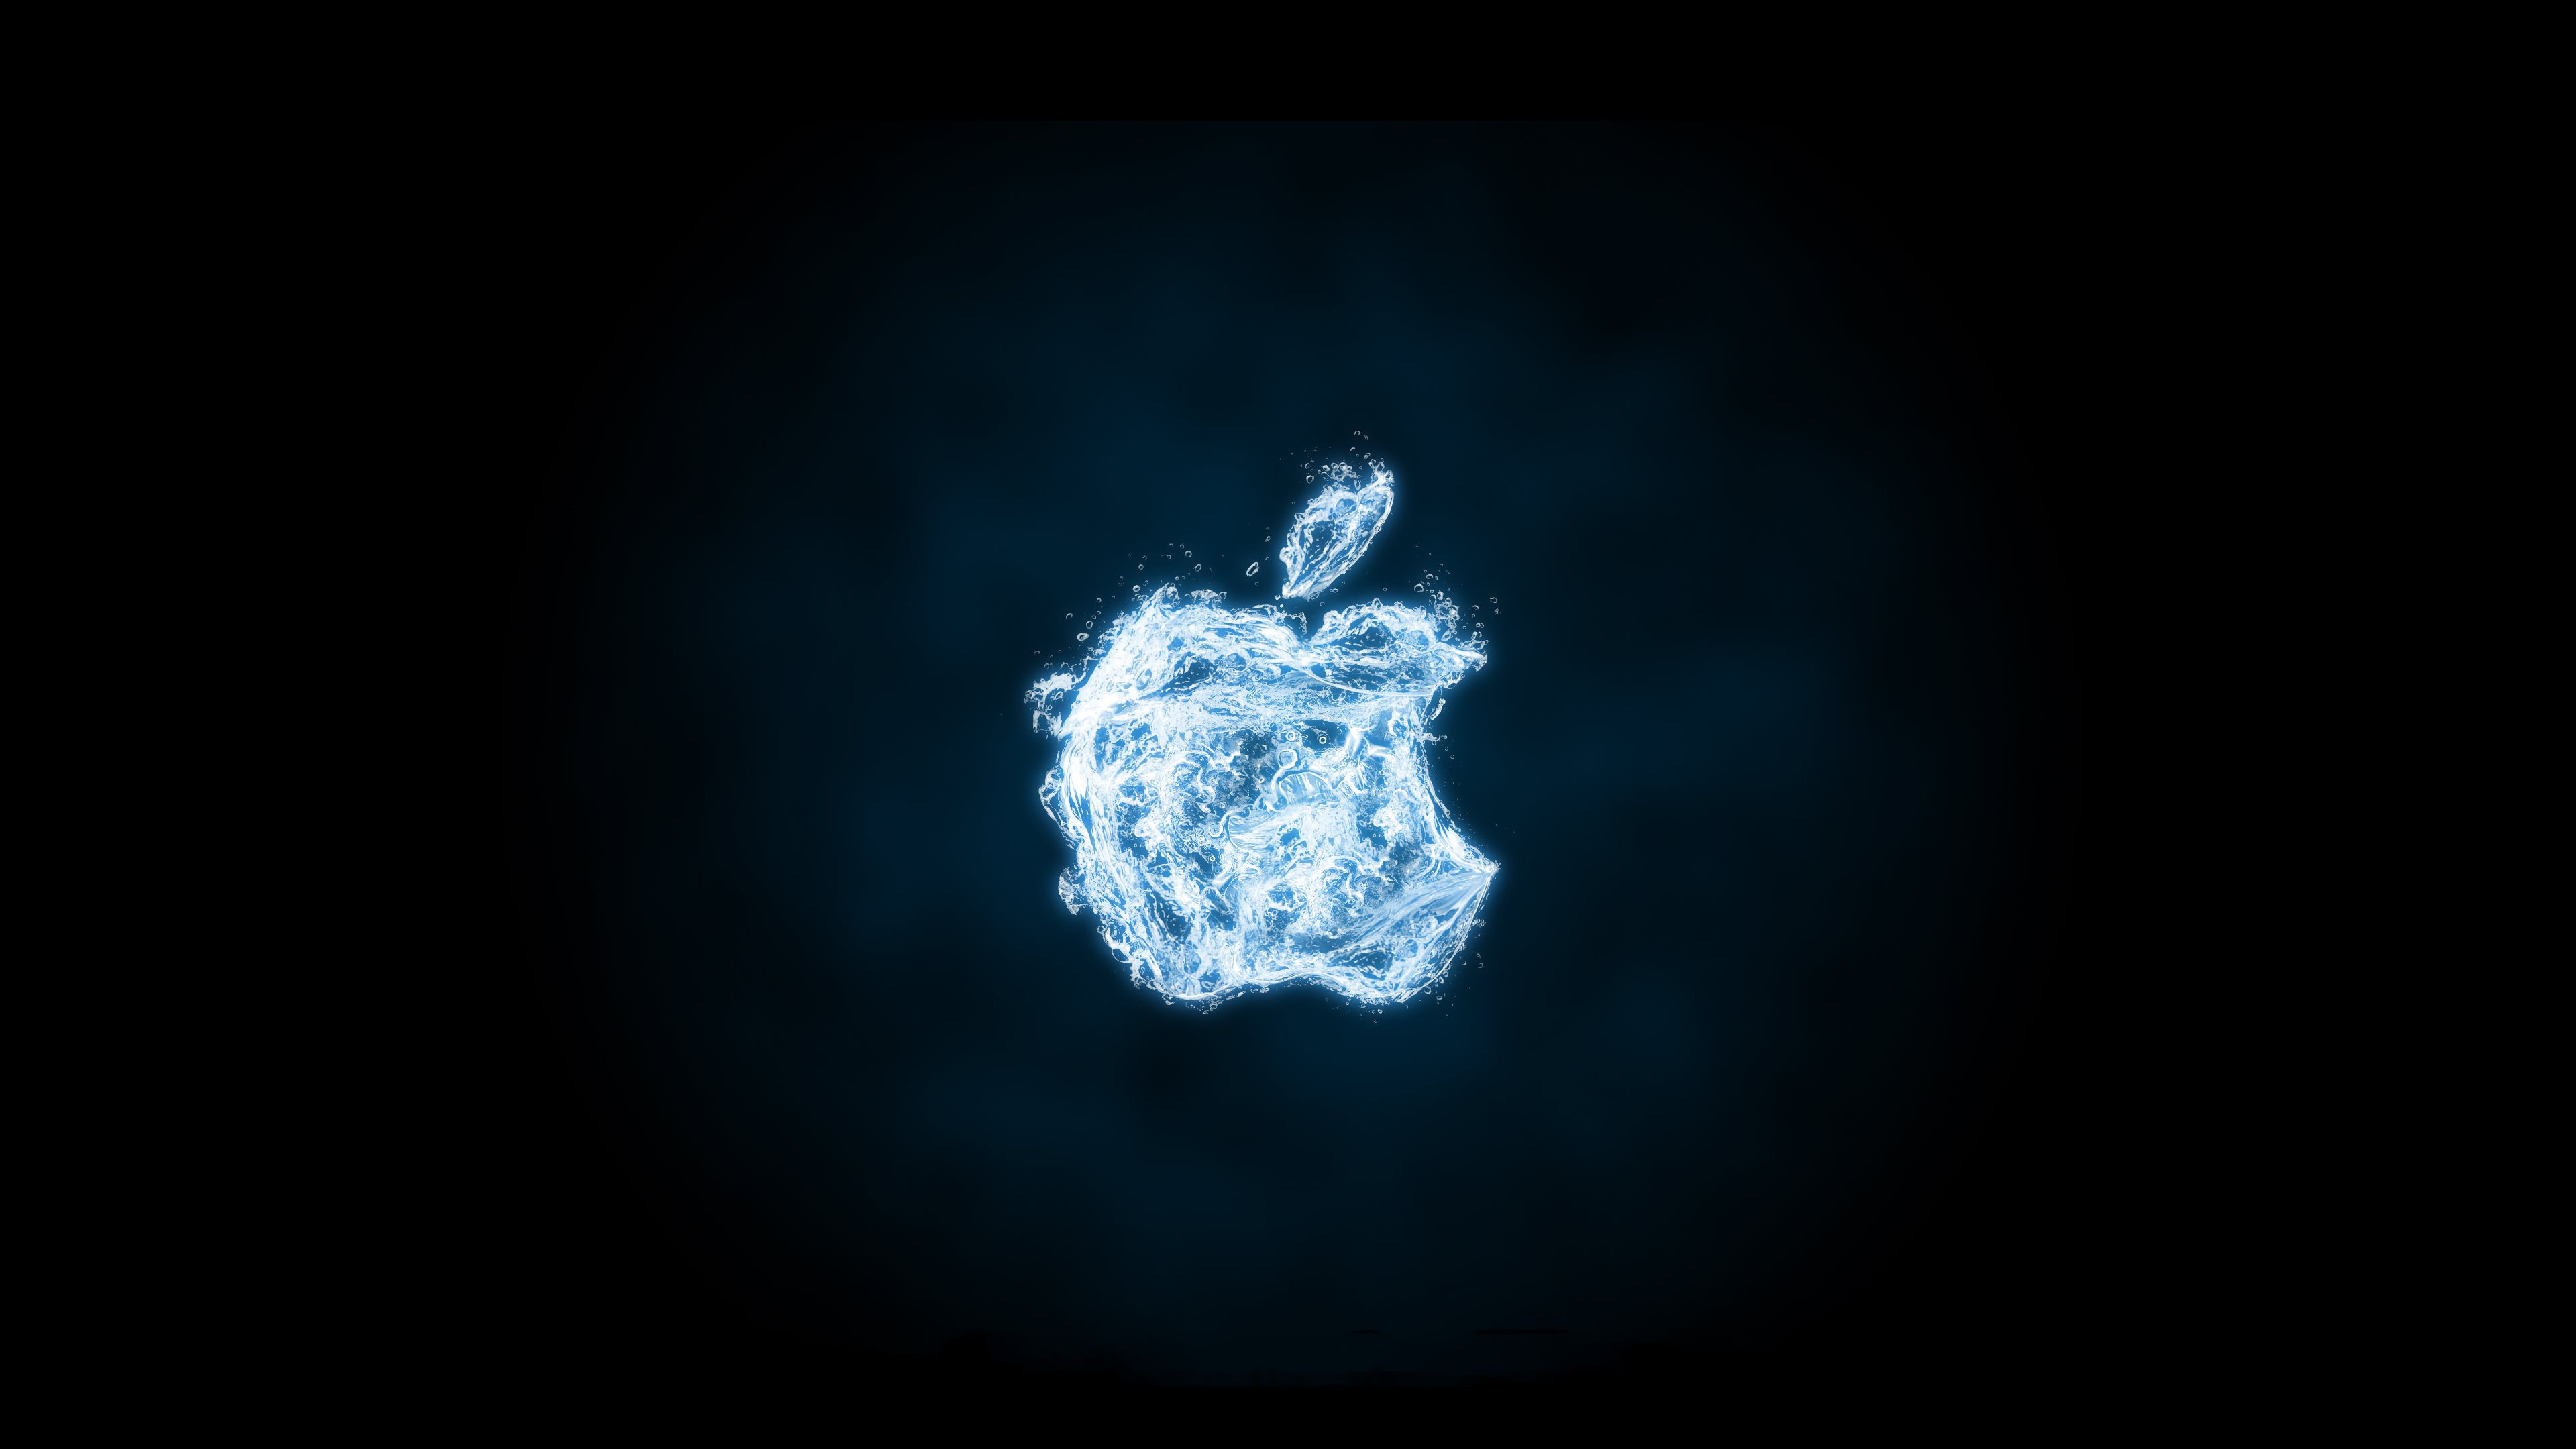 Apple Fire Apple Water HD Wallpapers 4K Wallpapers 3840x2160